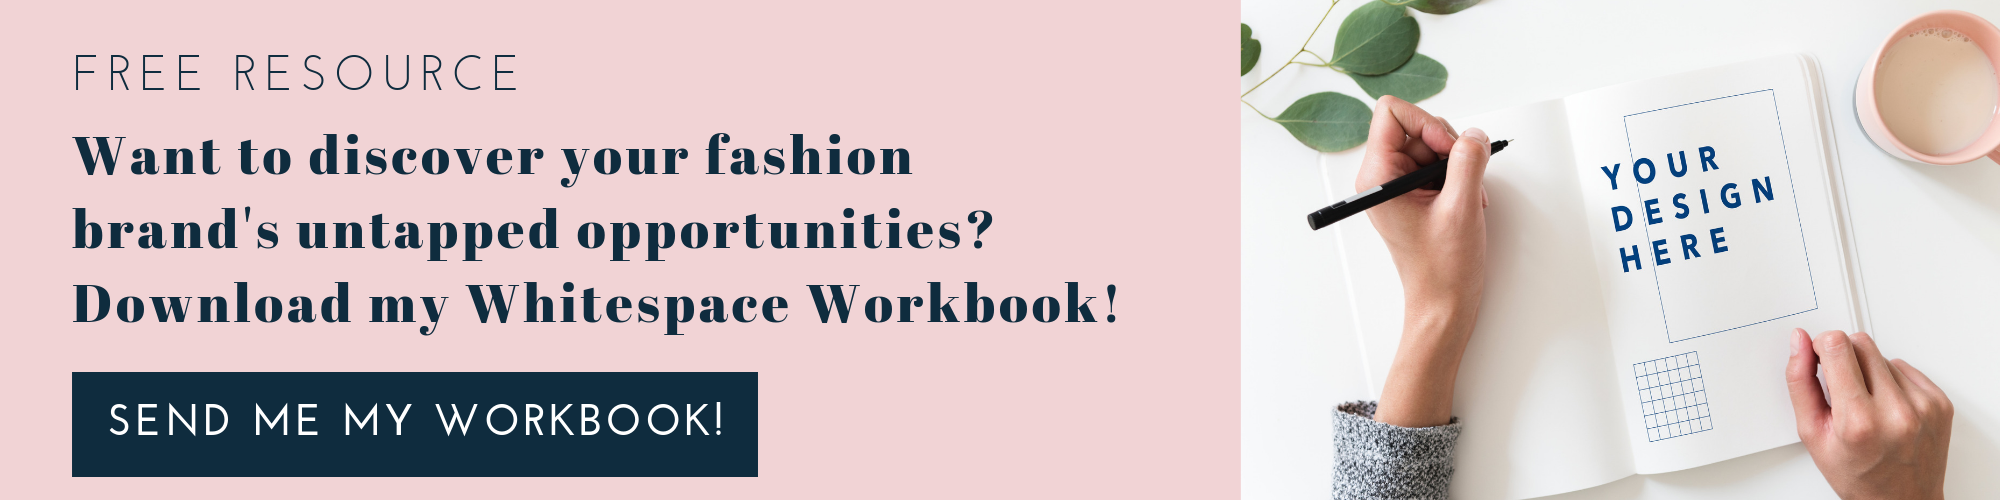 Download your free Whitespace Workbook to discover your fashion brand's untapped opportunities.